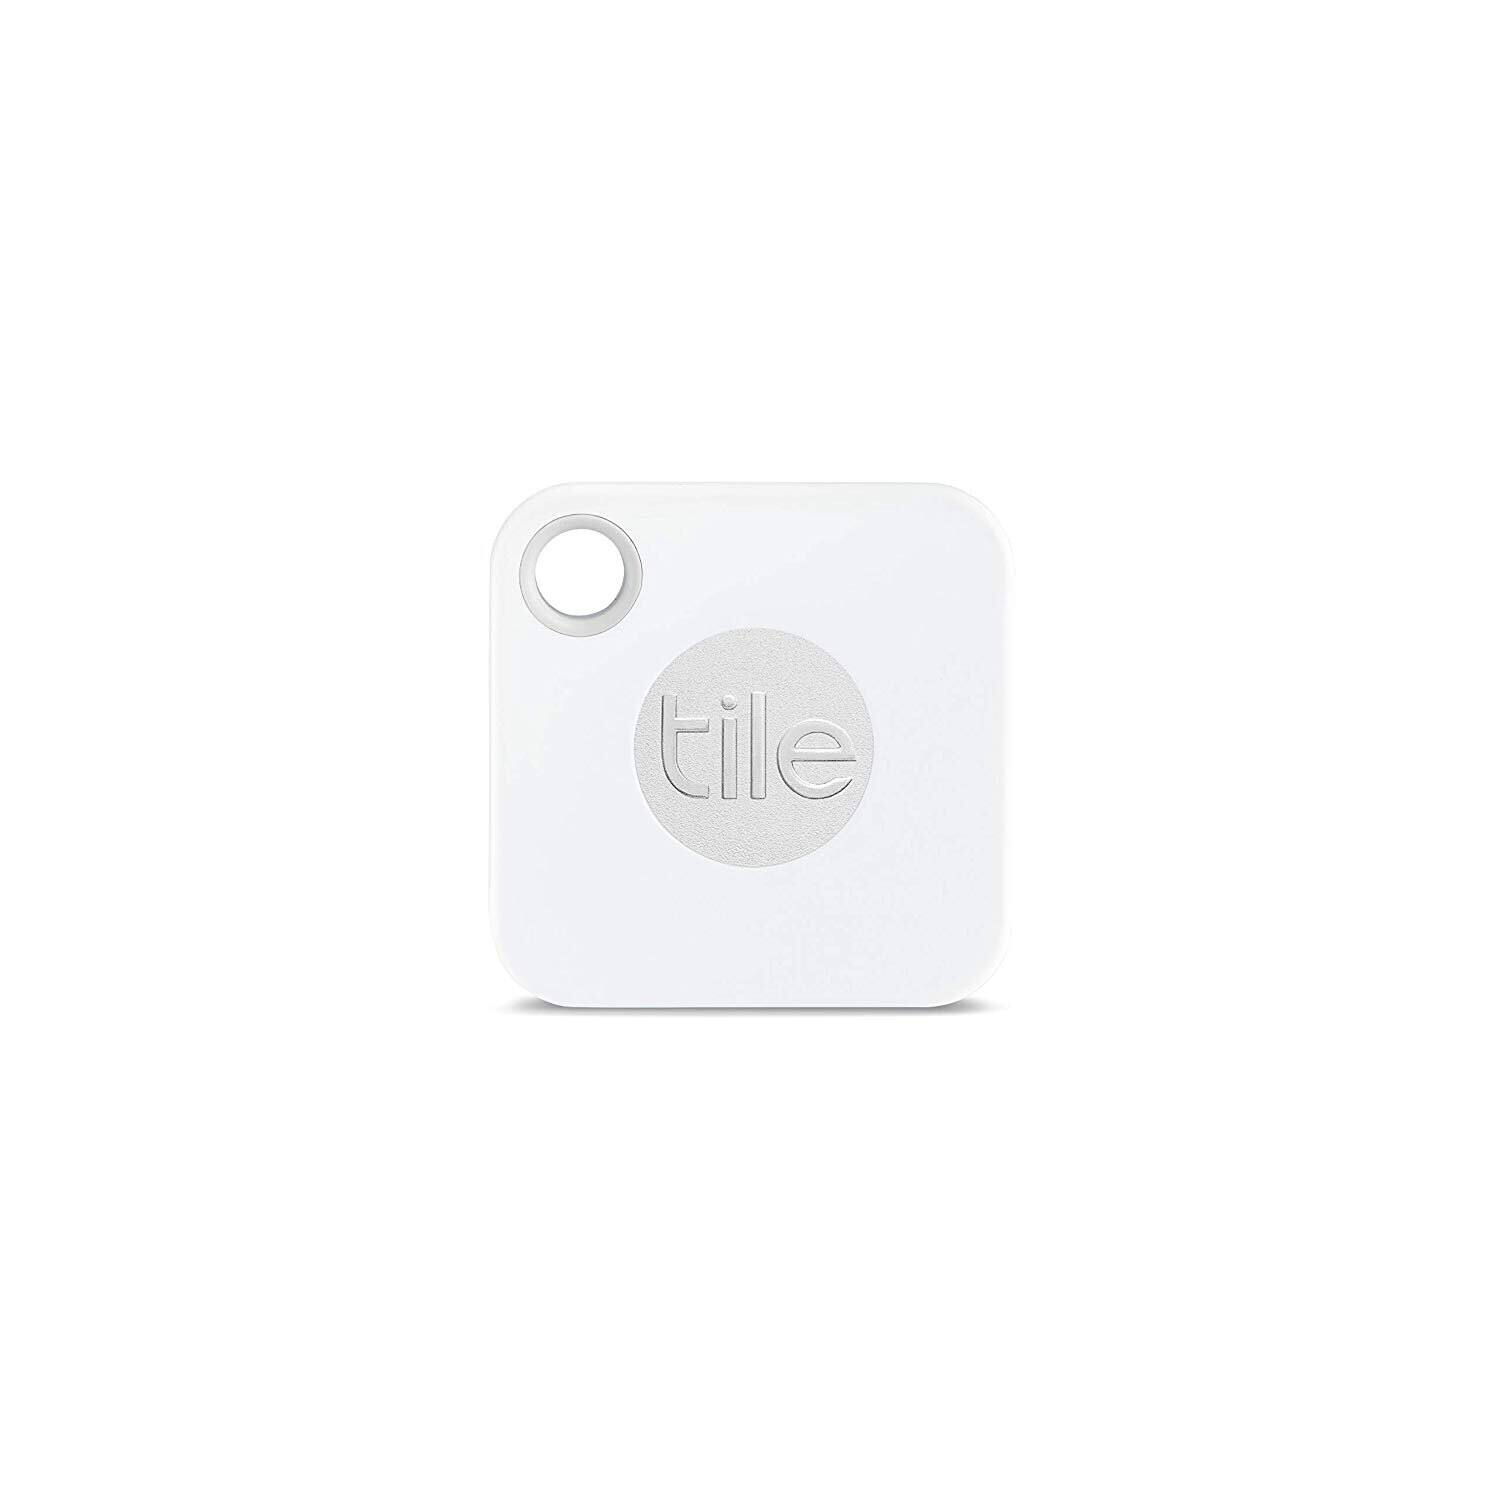 Tile Mate with Replacement Battery for $16.99 AC + FS